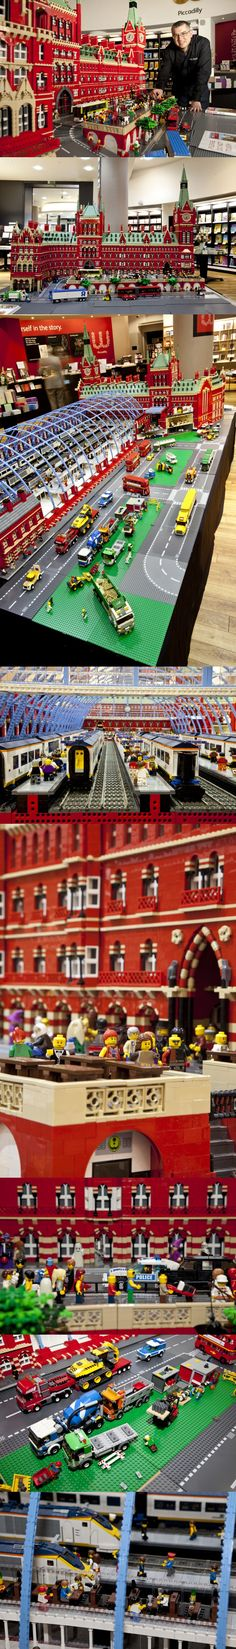 Incredible LEGO St Pancras International Station #LEGO #station - Pinned by Kidherostories.com -personalized children's books with photo and name.